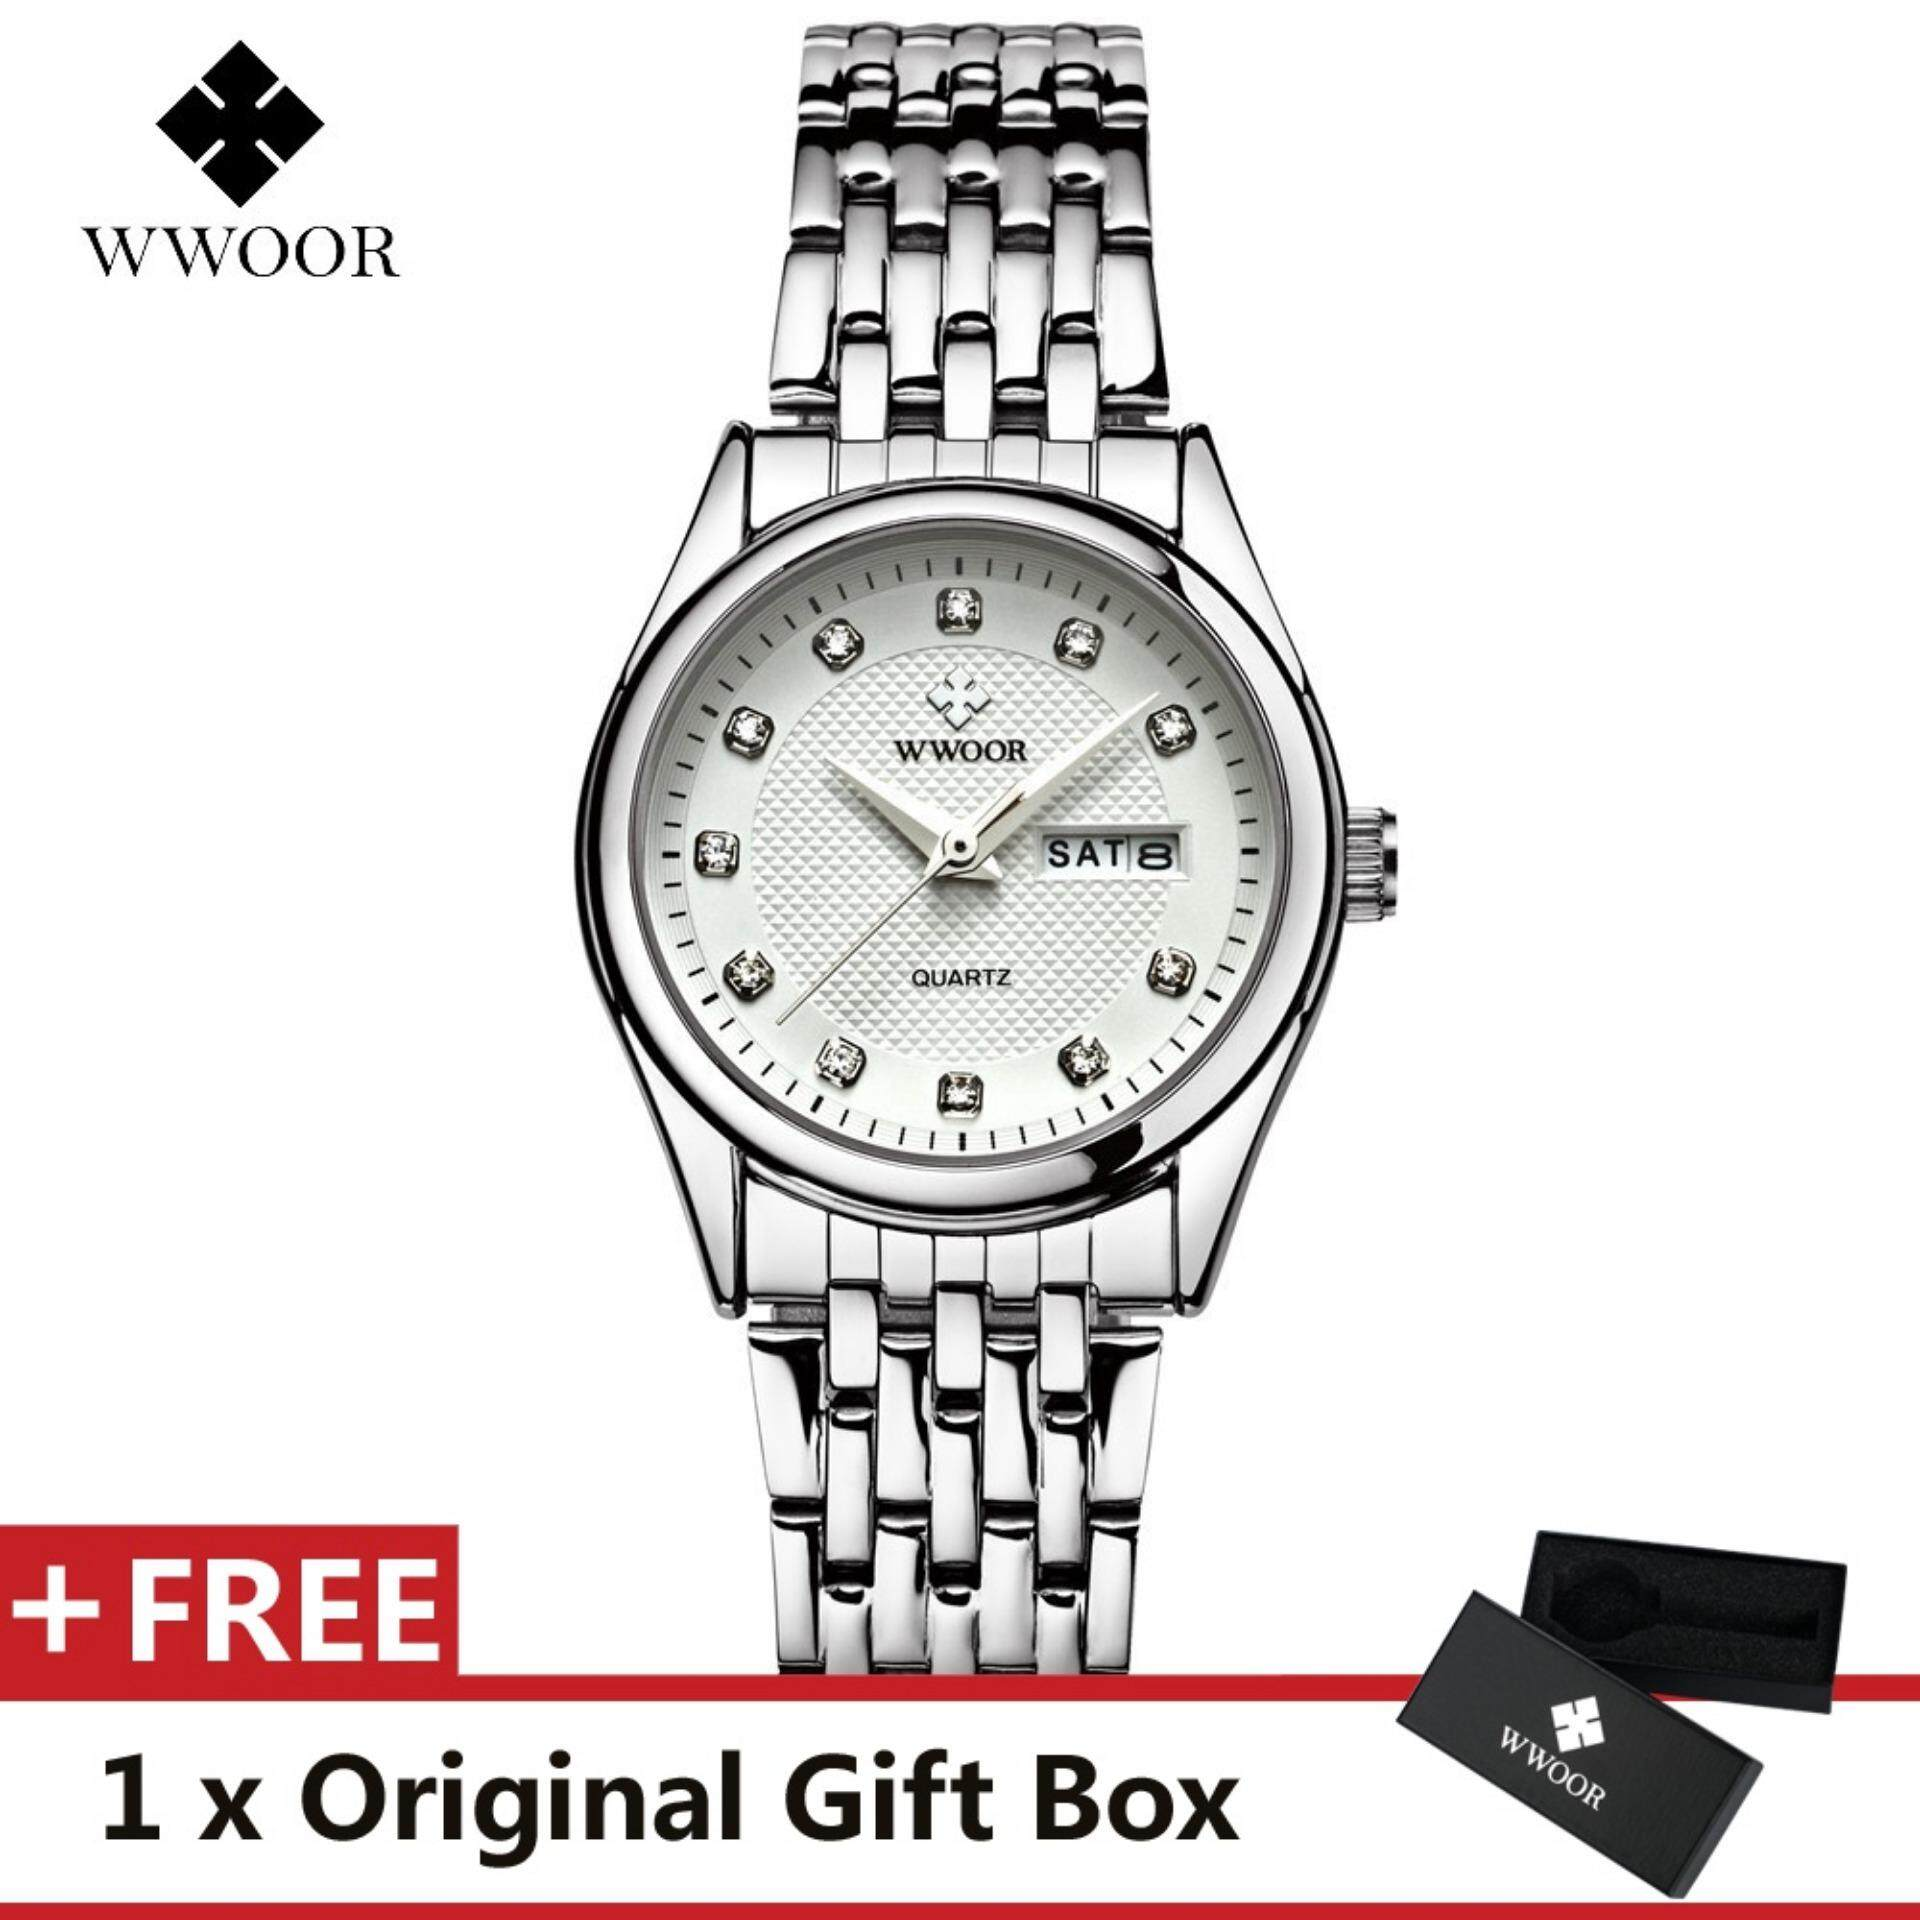 Buy Formal Watches For Women At Best Prices Online In Malaysia Jam Tangan Wanita Casio Ltp 1094e 1a Original Wwoor Top Luxury Brand Watch Famous Womens Fashion Quartz Bracelet Calendar Waterproof Dress Alloy